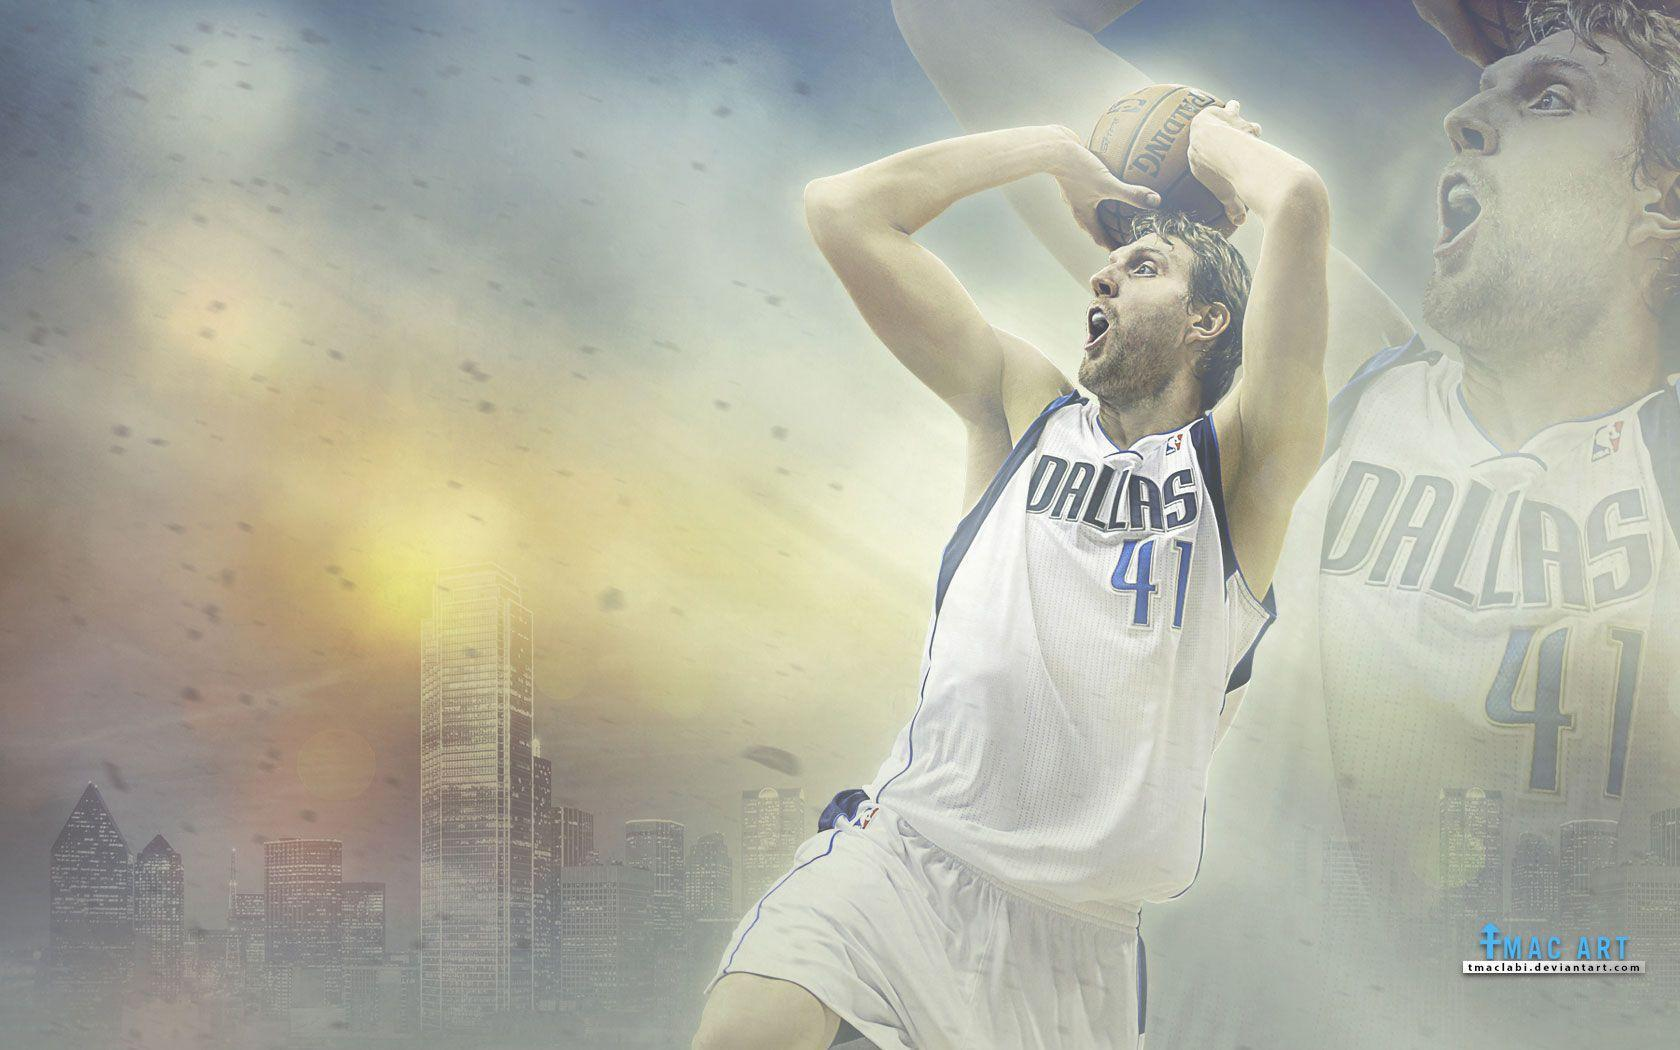 7 Dallas Mavericks HD Wallpapers | Backgrounds - Wallpaper Abyss